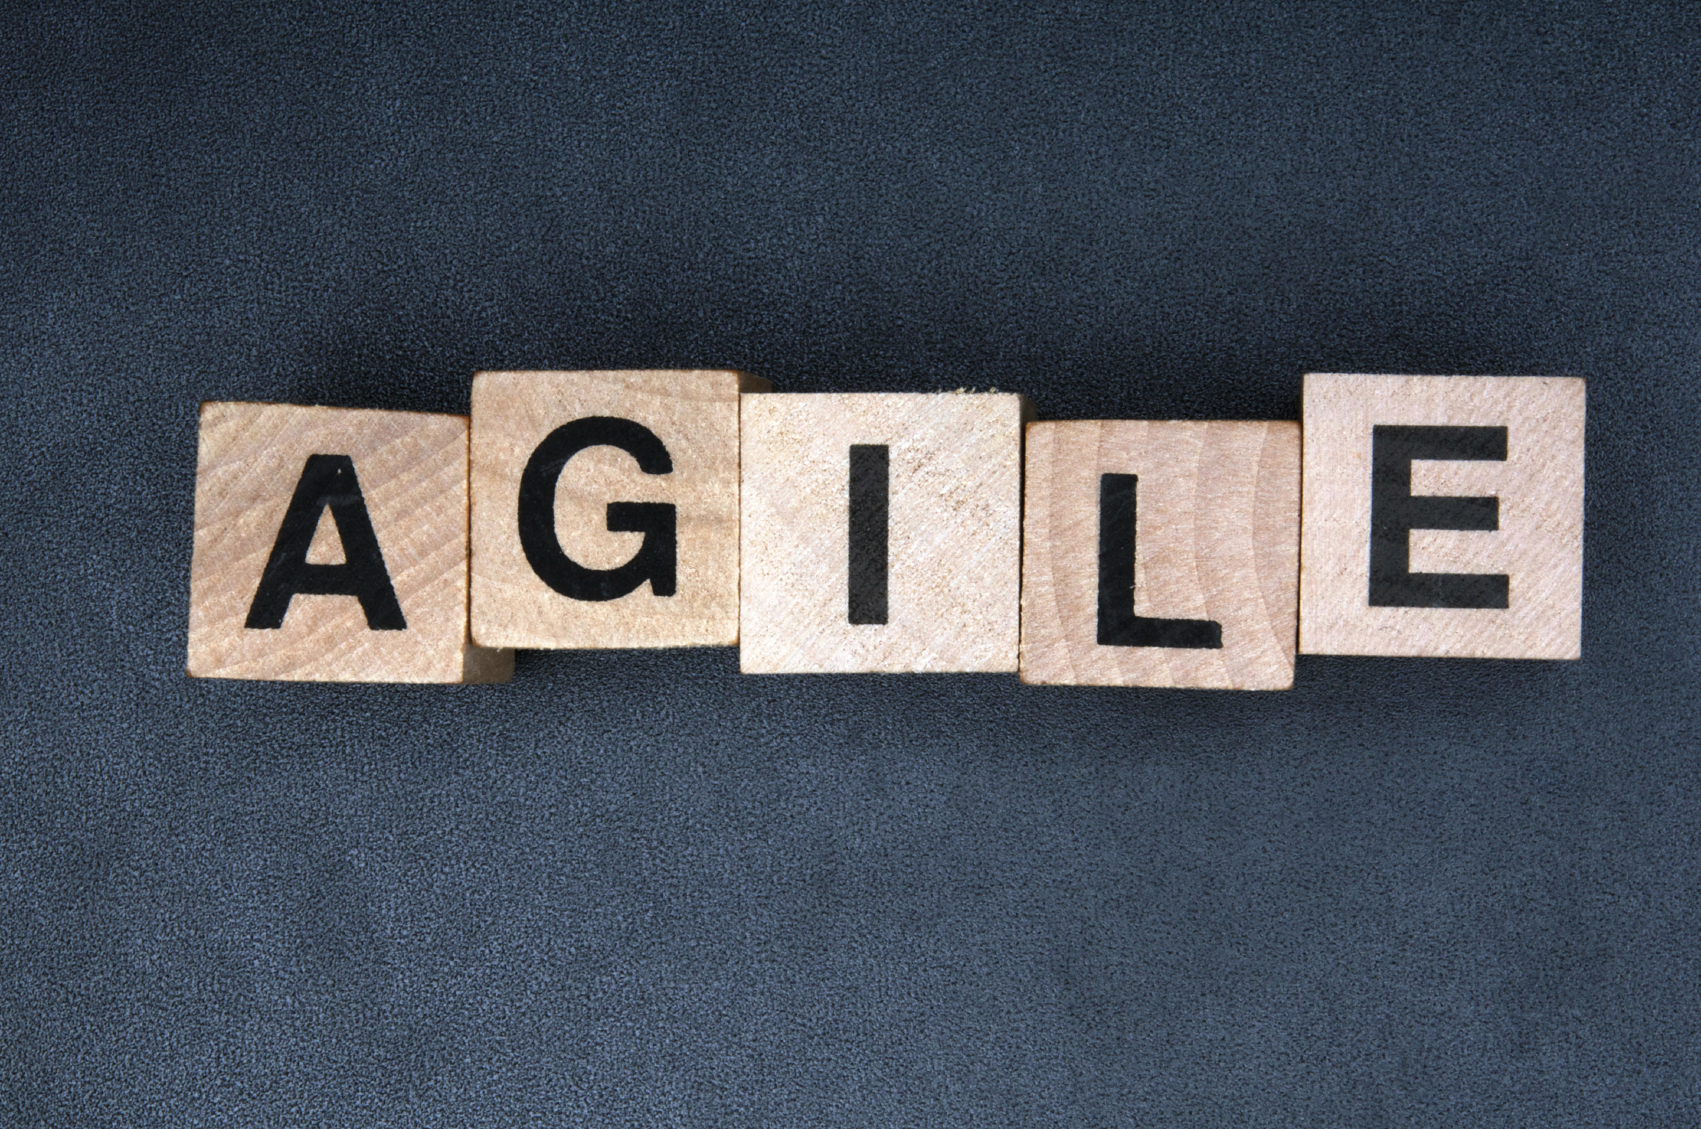 Key Agile Product Governance & Compliance Capabilities